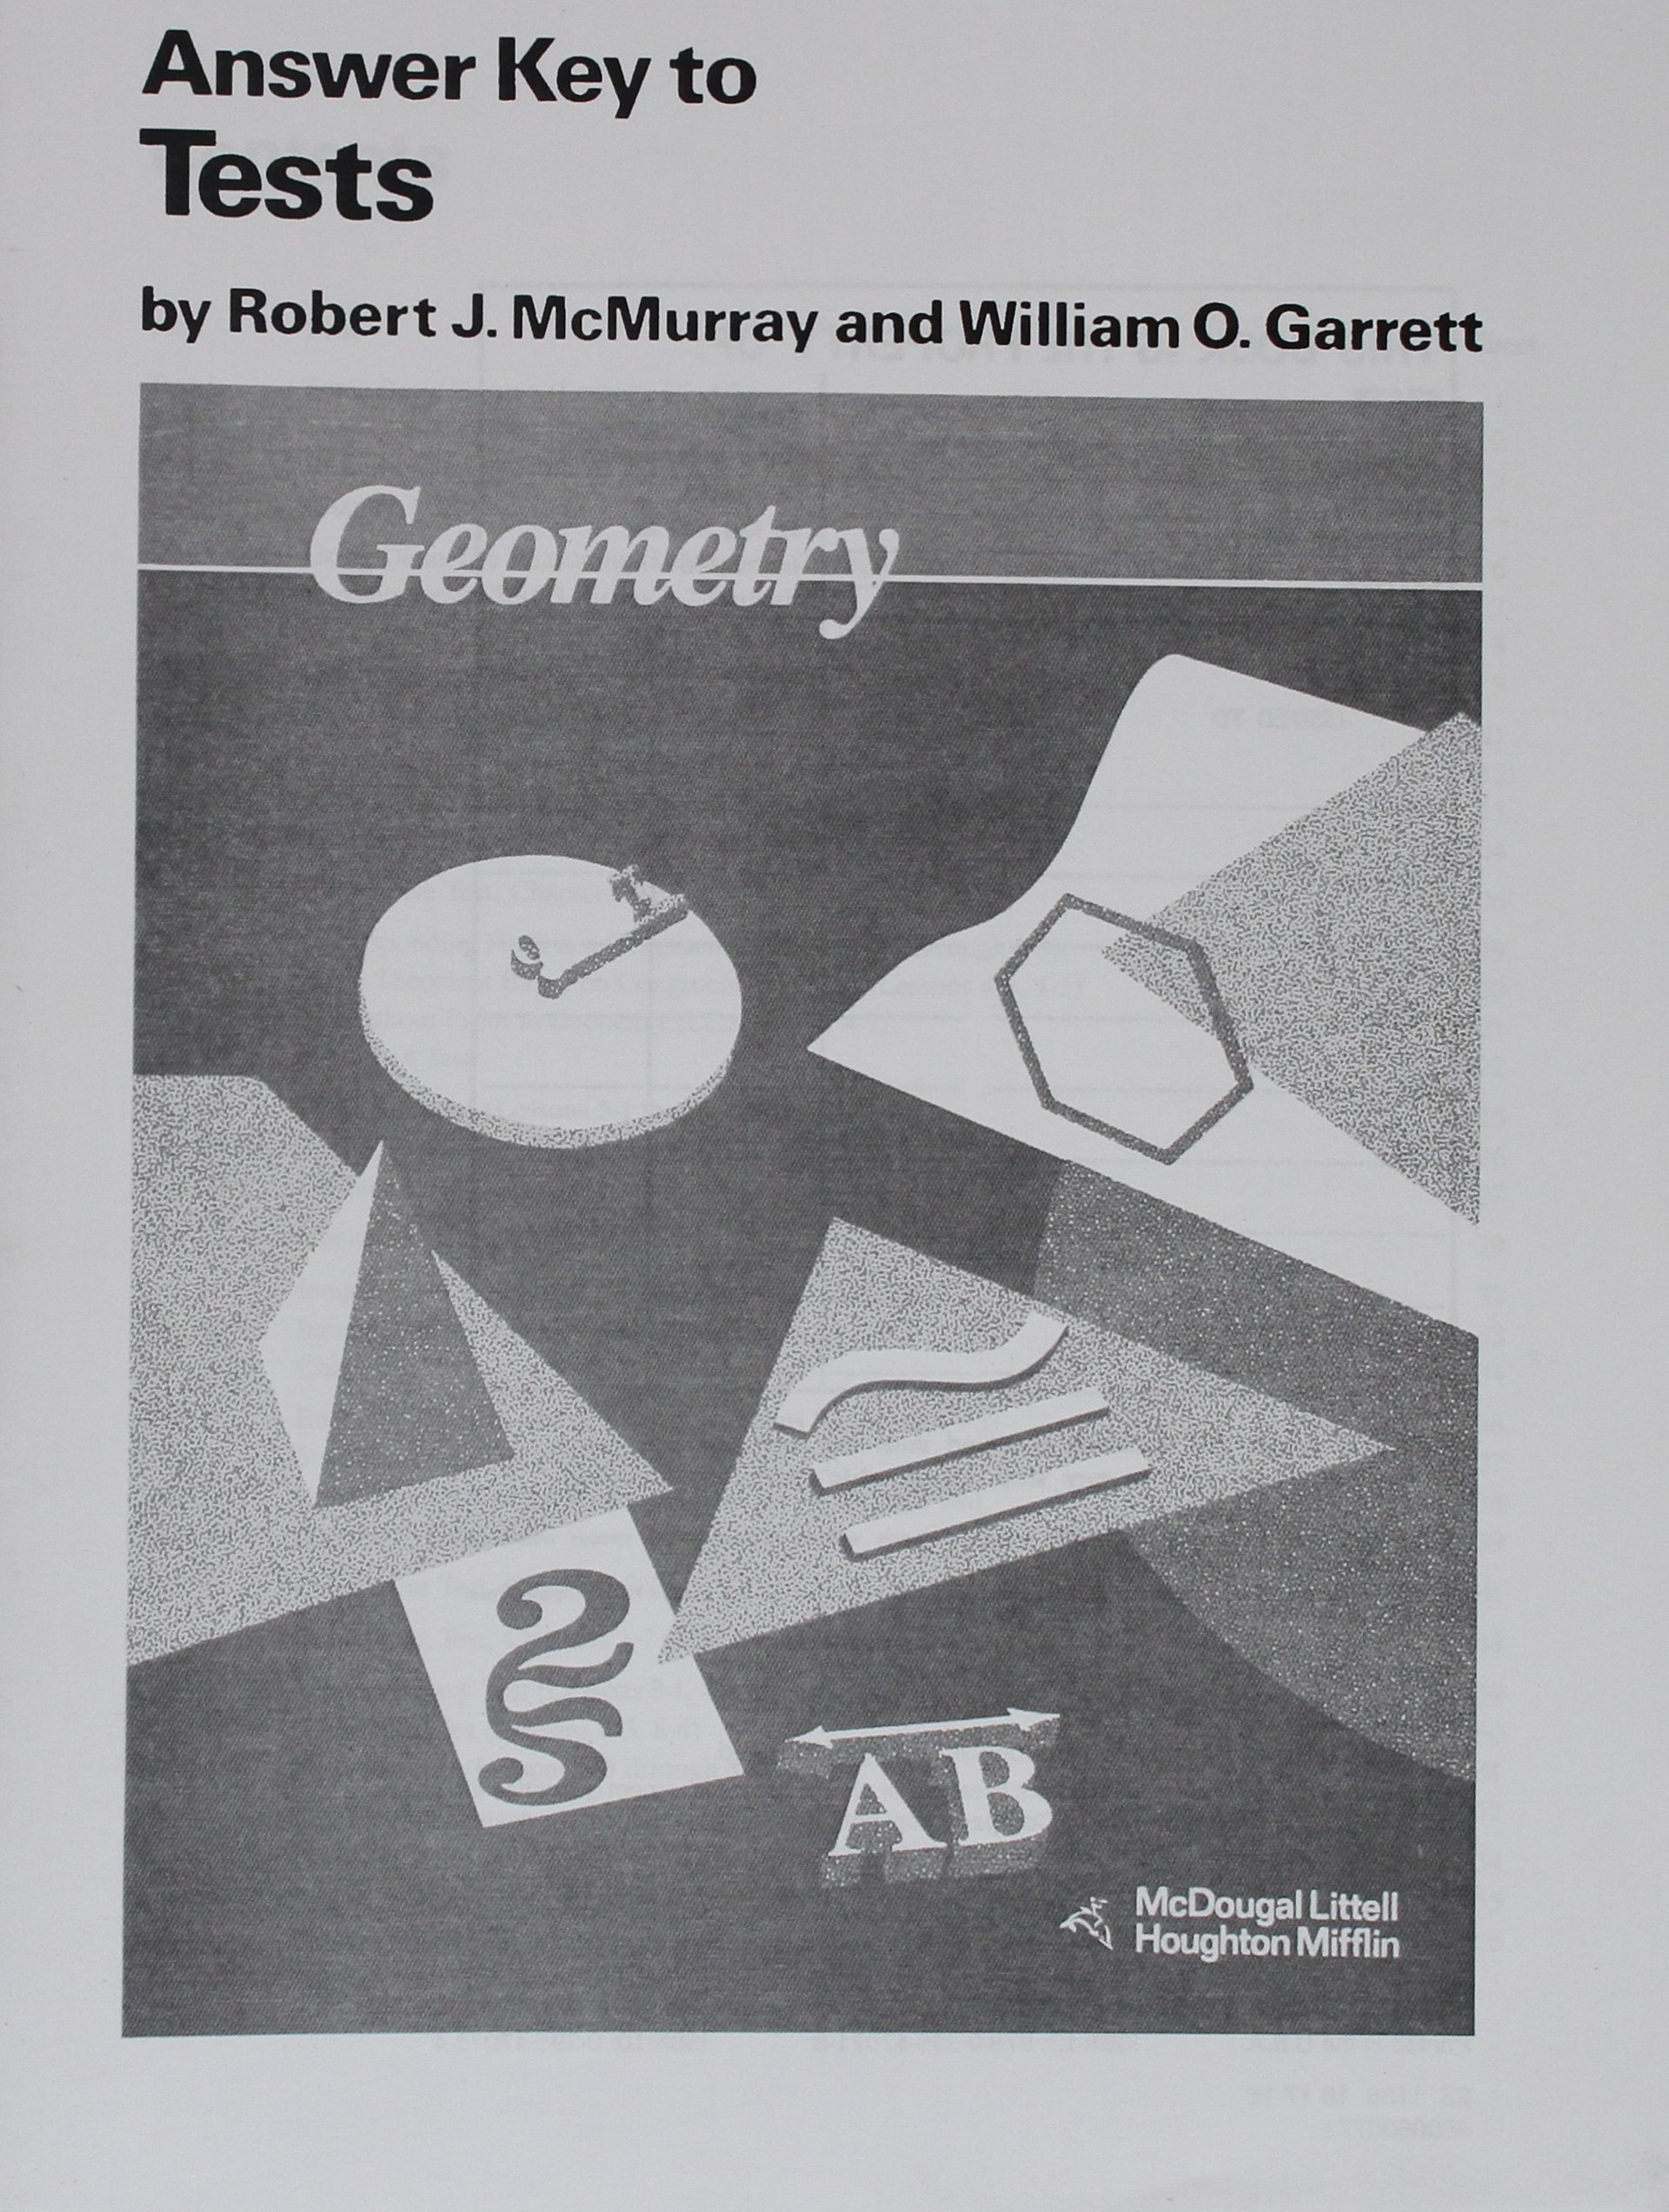 mcdougal littell geometry worksheet answers Termolak – Holt Mcdougal Geometry Worksheet Answers